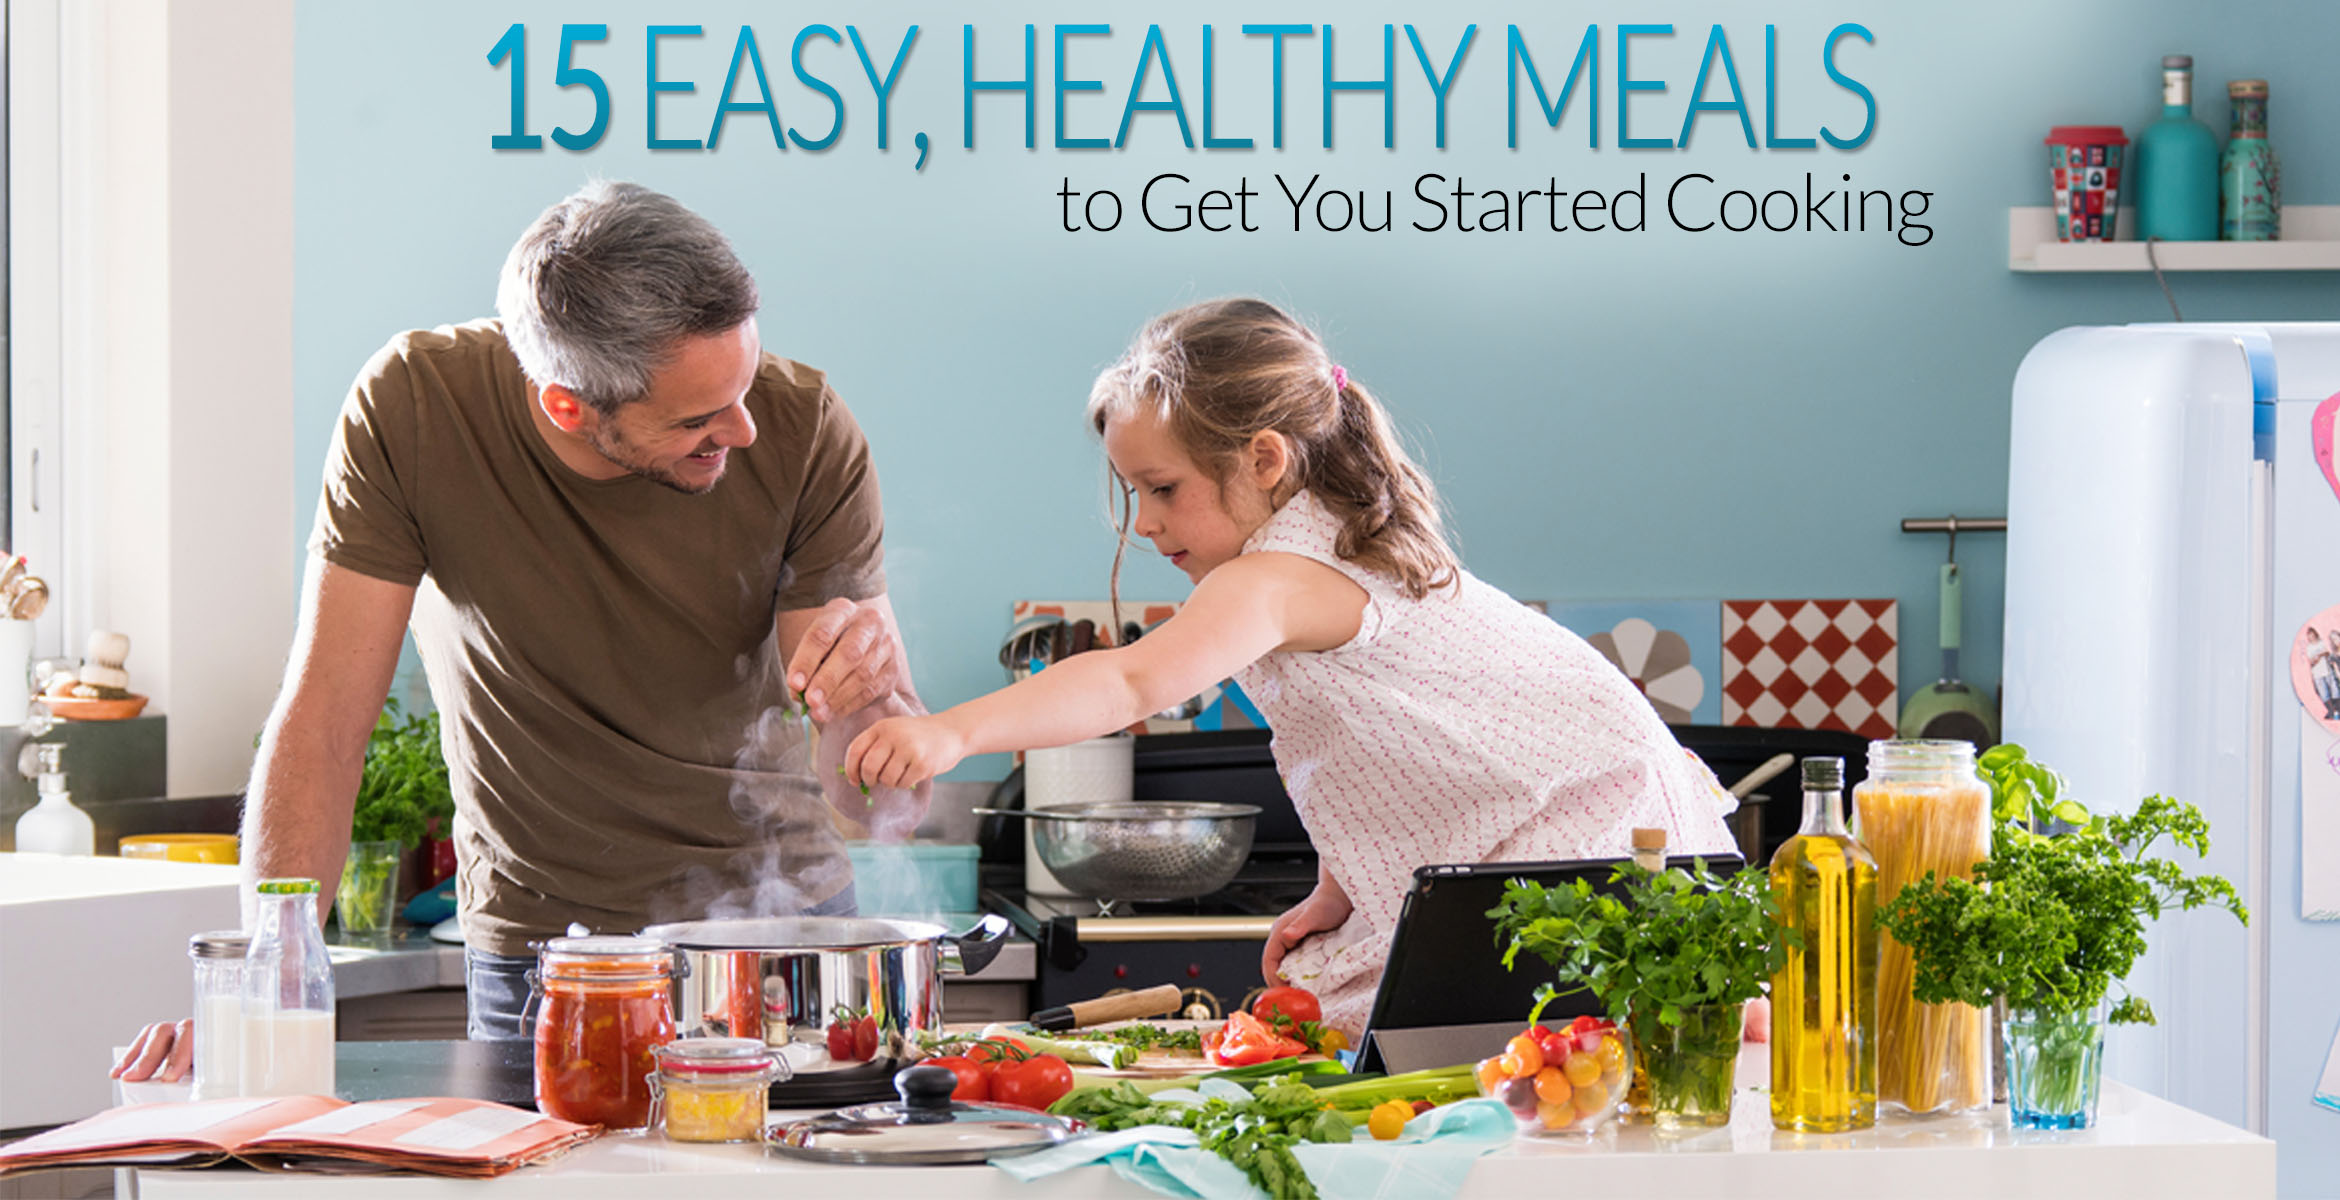 easy-healthy-meals-to-get-you-started-cooking